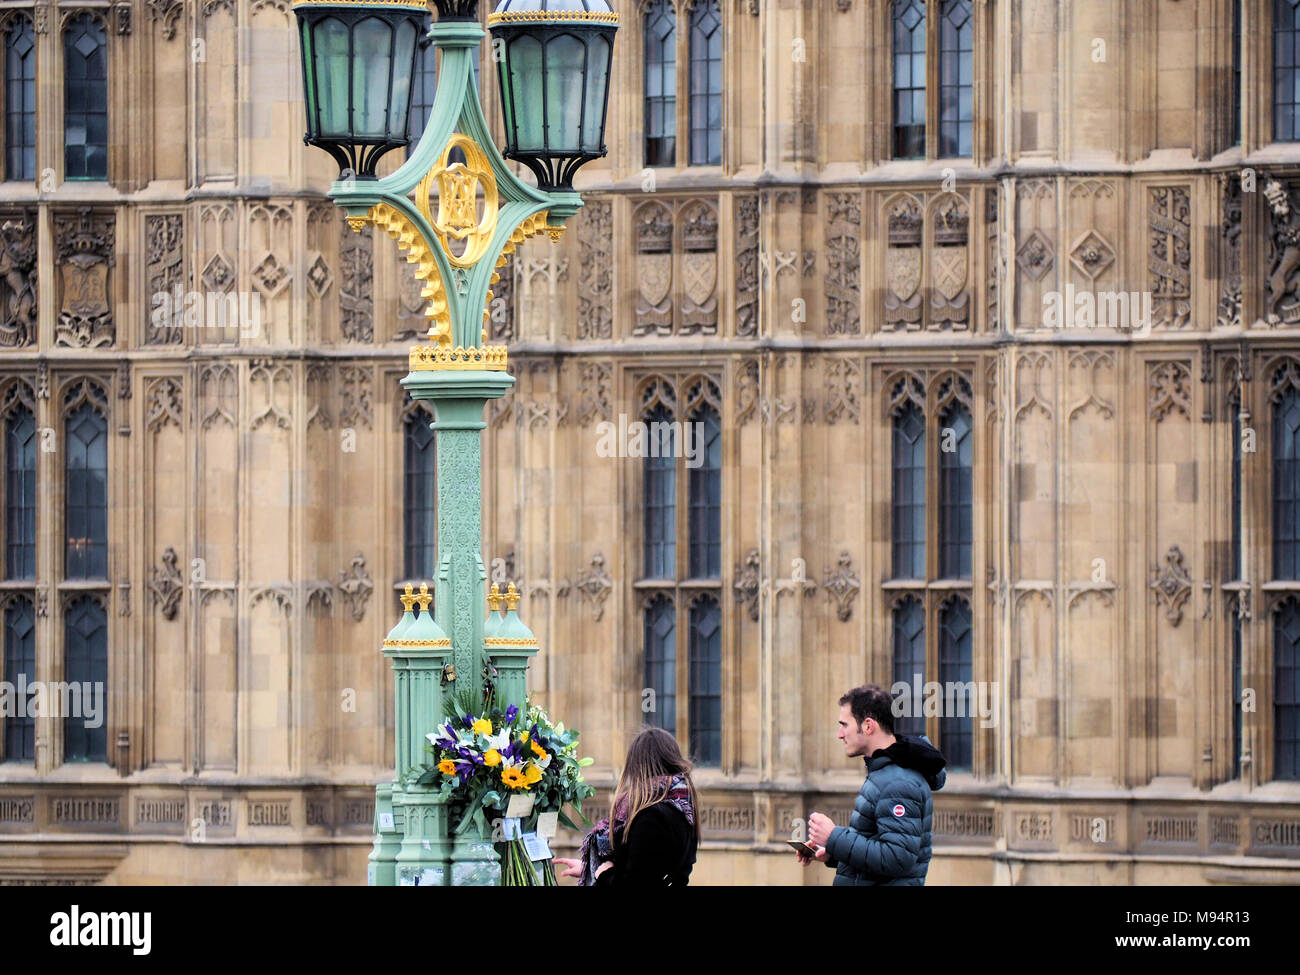 London, UK. 22nd Mar, 2018. The one year anniversary of the Westminster Bridge Attack is marked by flower tributes and solidarity messages on Westminster Bridge and on Parliament Square. © Brian Minkoff/Alamy Live News - Stock Image